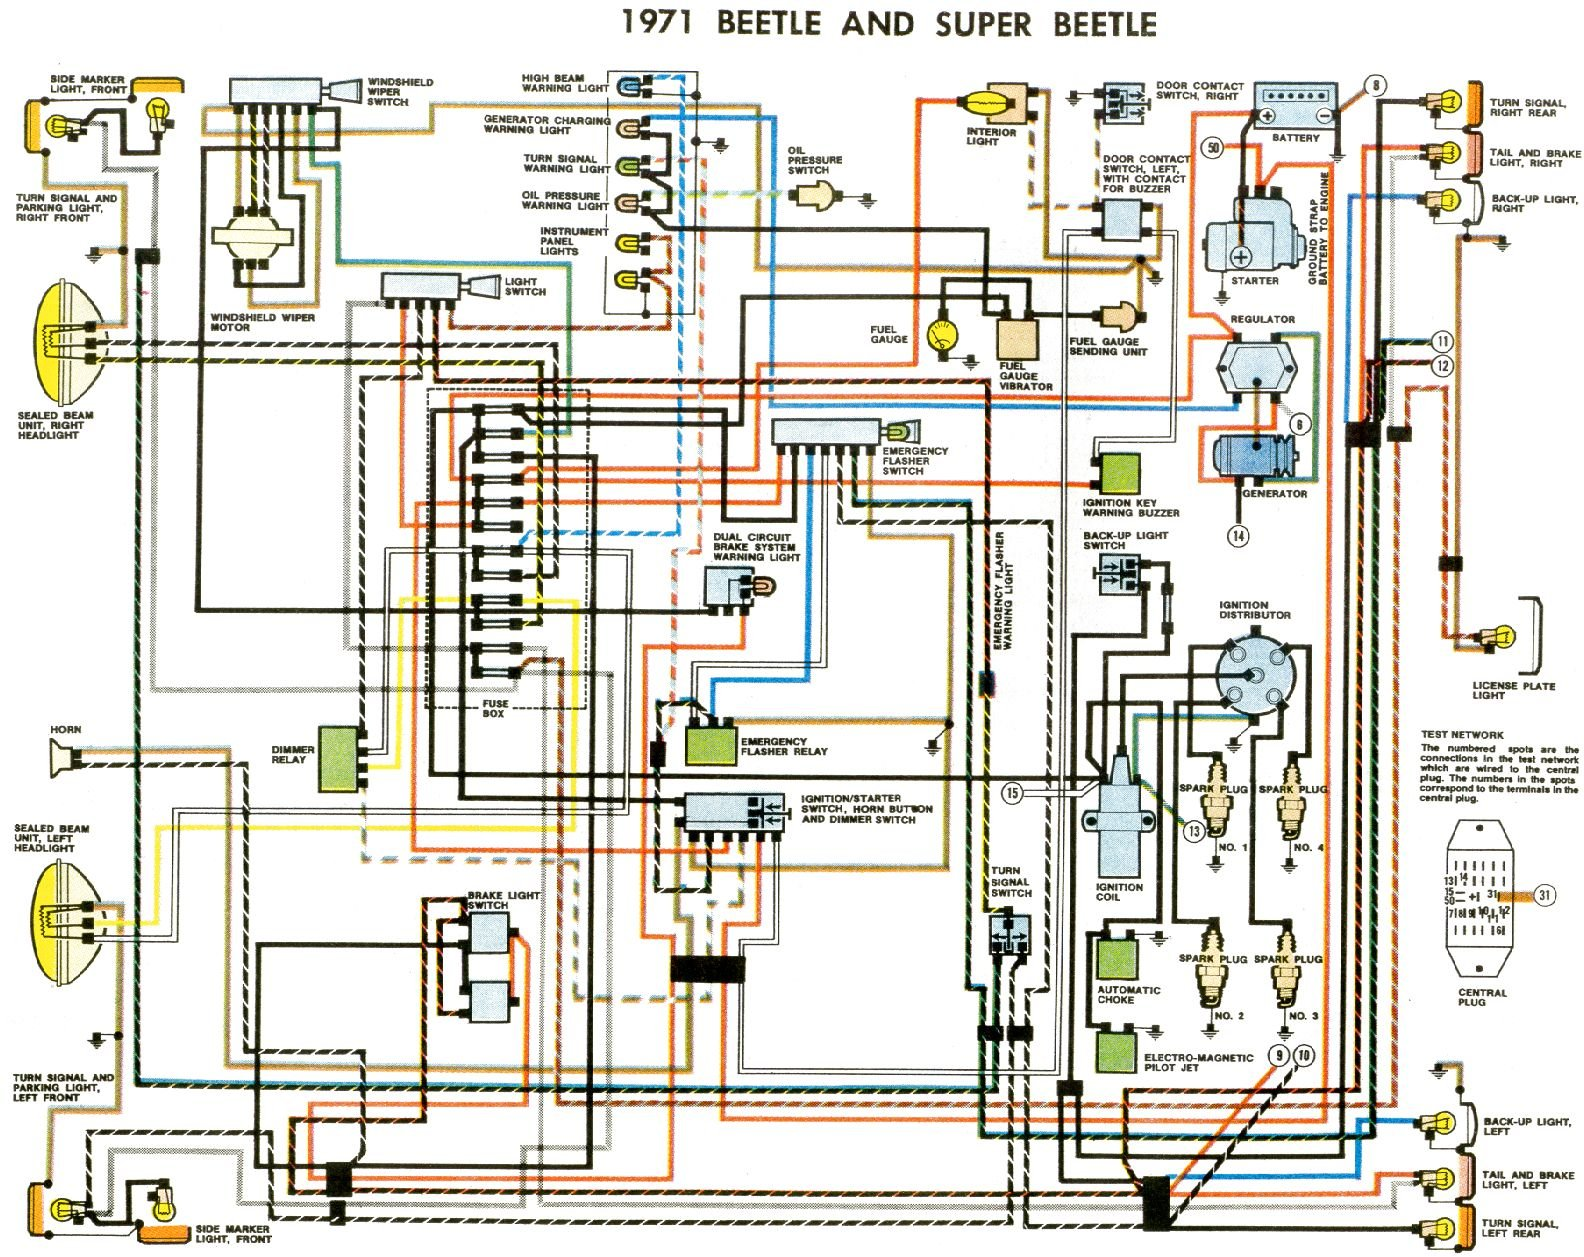 camaro wiring harness diagram 1968 beetle wiring diagram 1968 wiring diagrams online 69 beetle wiring diagram 69 image wiring diagram